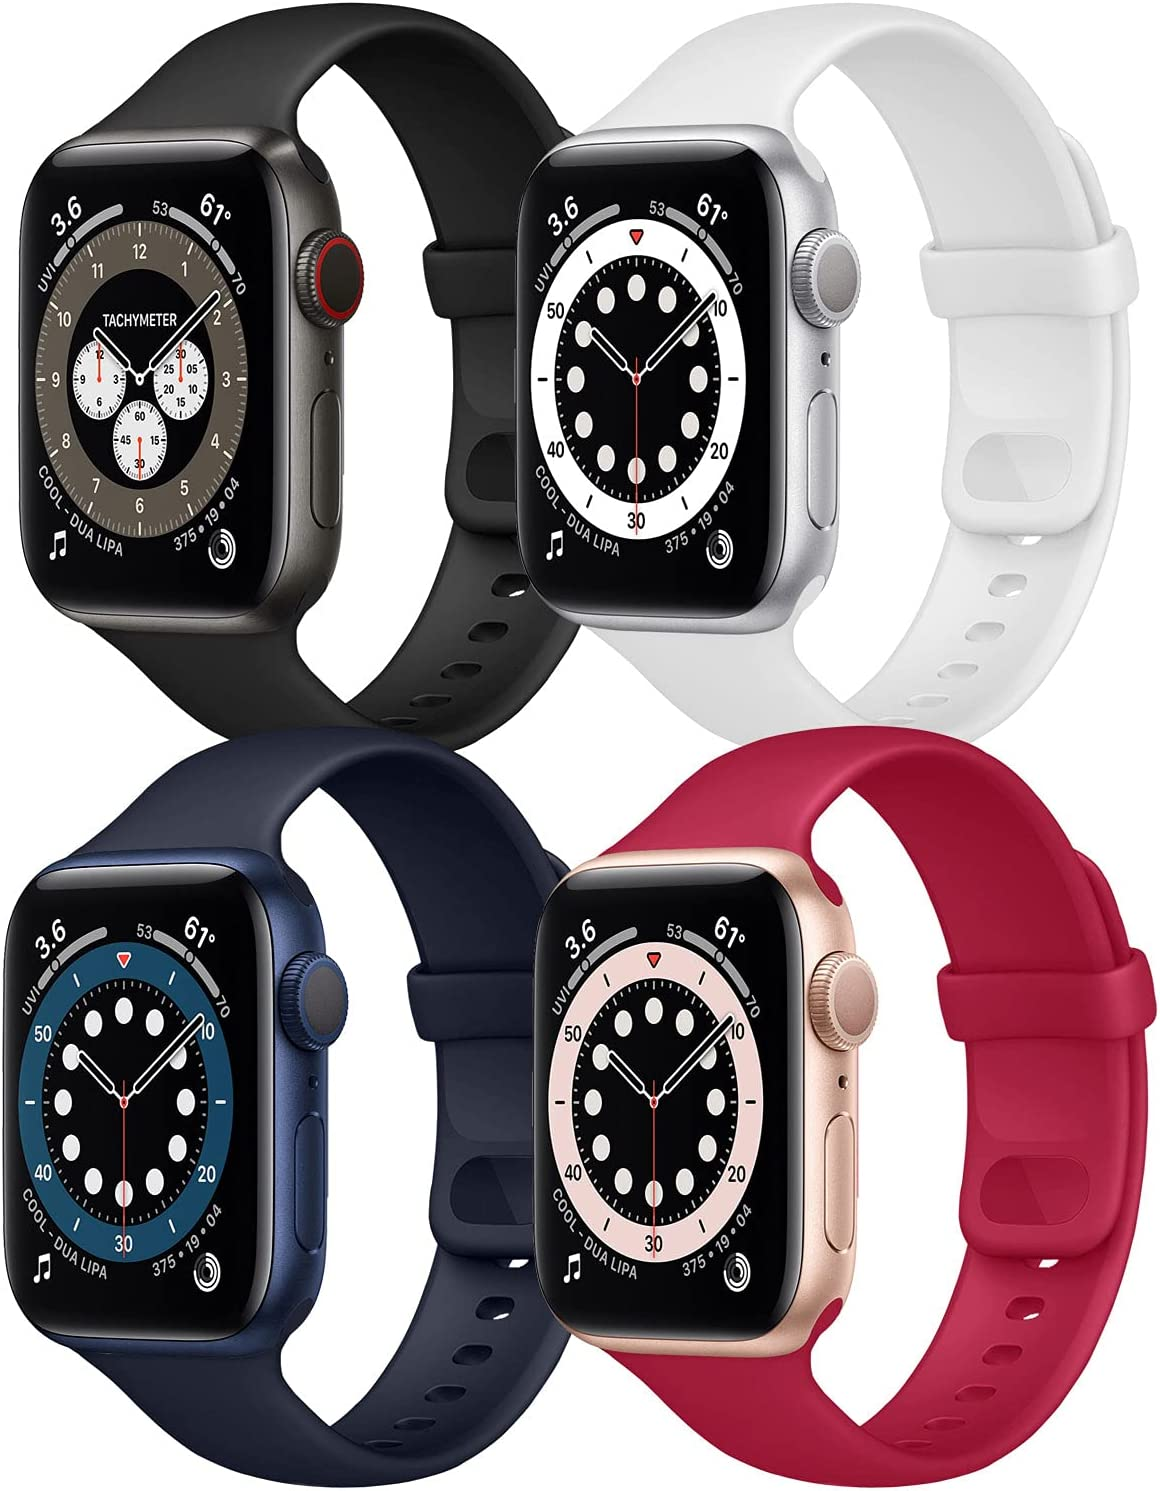 Hotflow 4 Pack Compatible with Apple Watch Bands 38mm 40mm for Women Men,Soft Silicone Sport Replacement Strap Compatible for iWatch Series SE 6 5 4 3 2 1(Rose Red/Black/Midnight Blue/White,Size-S/M)